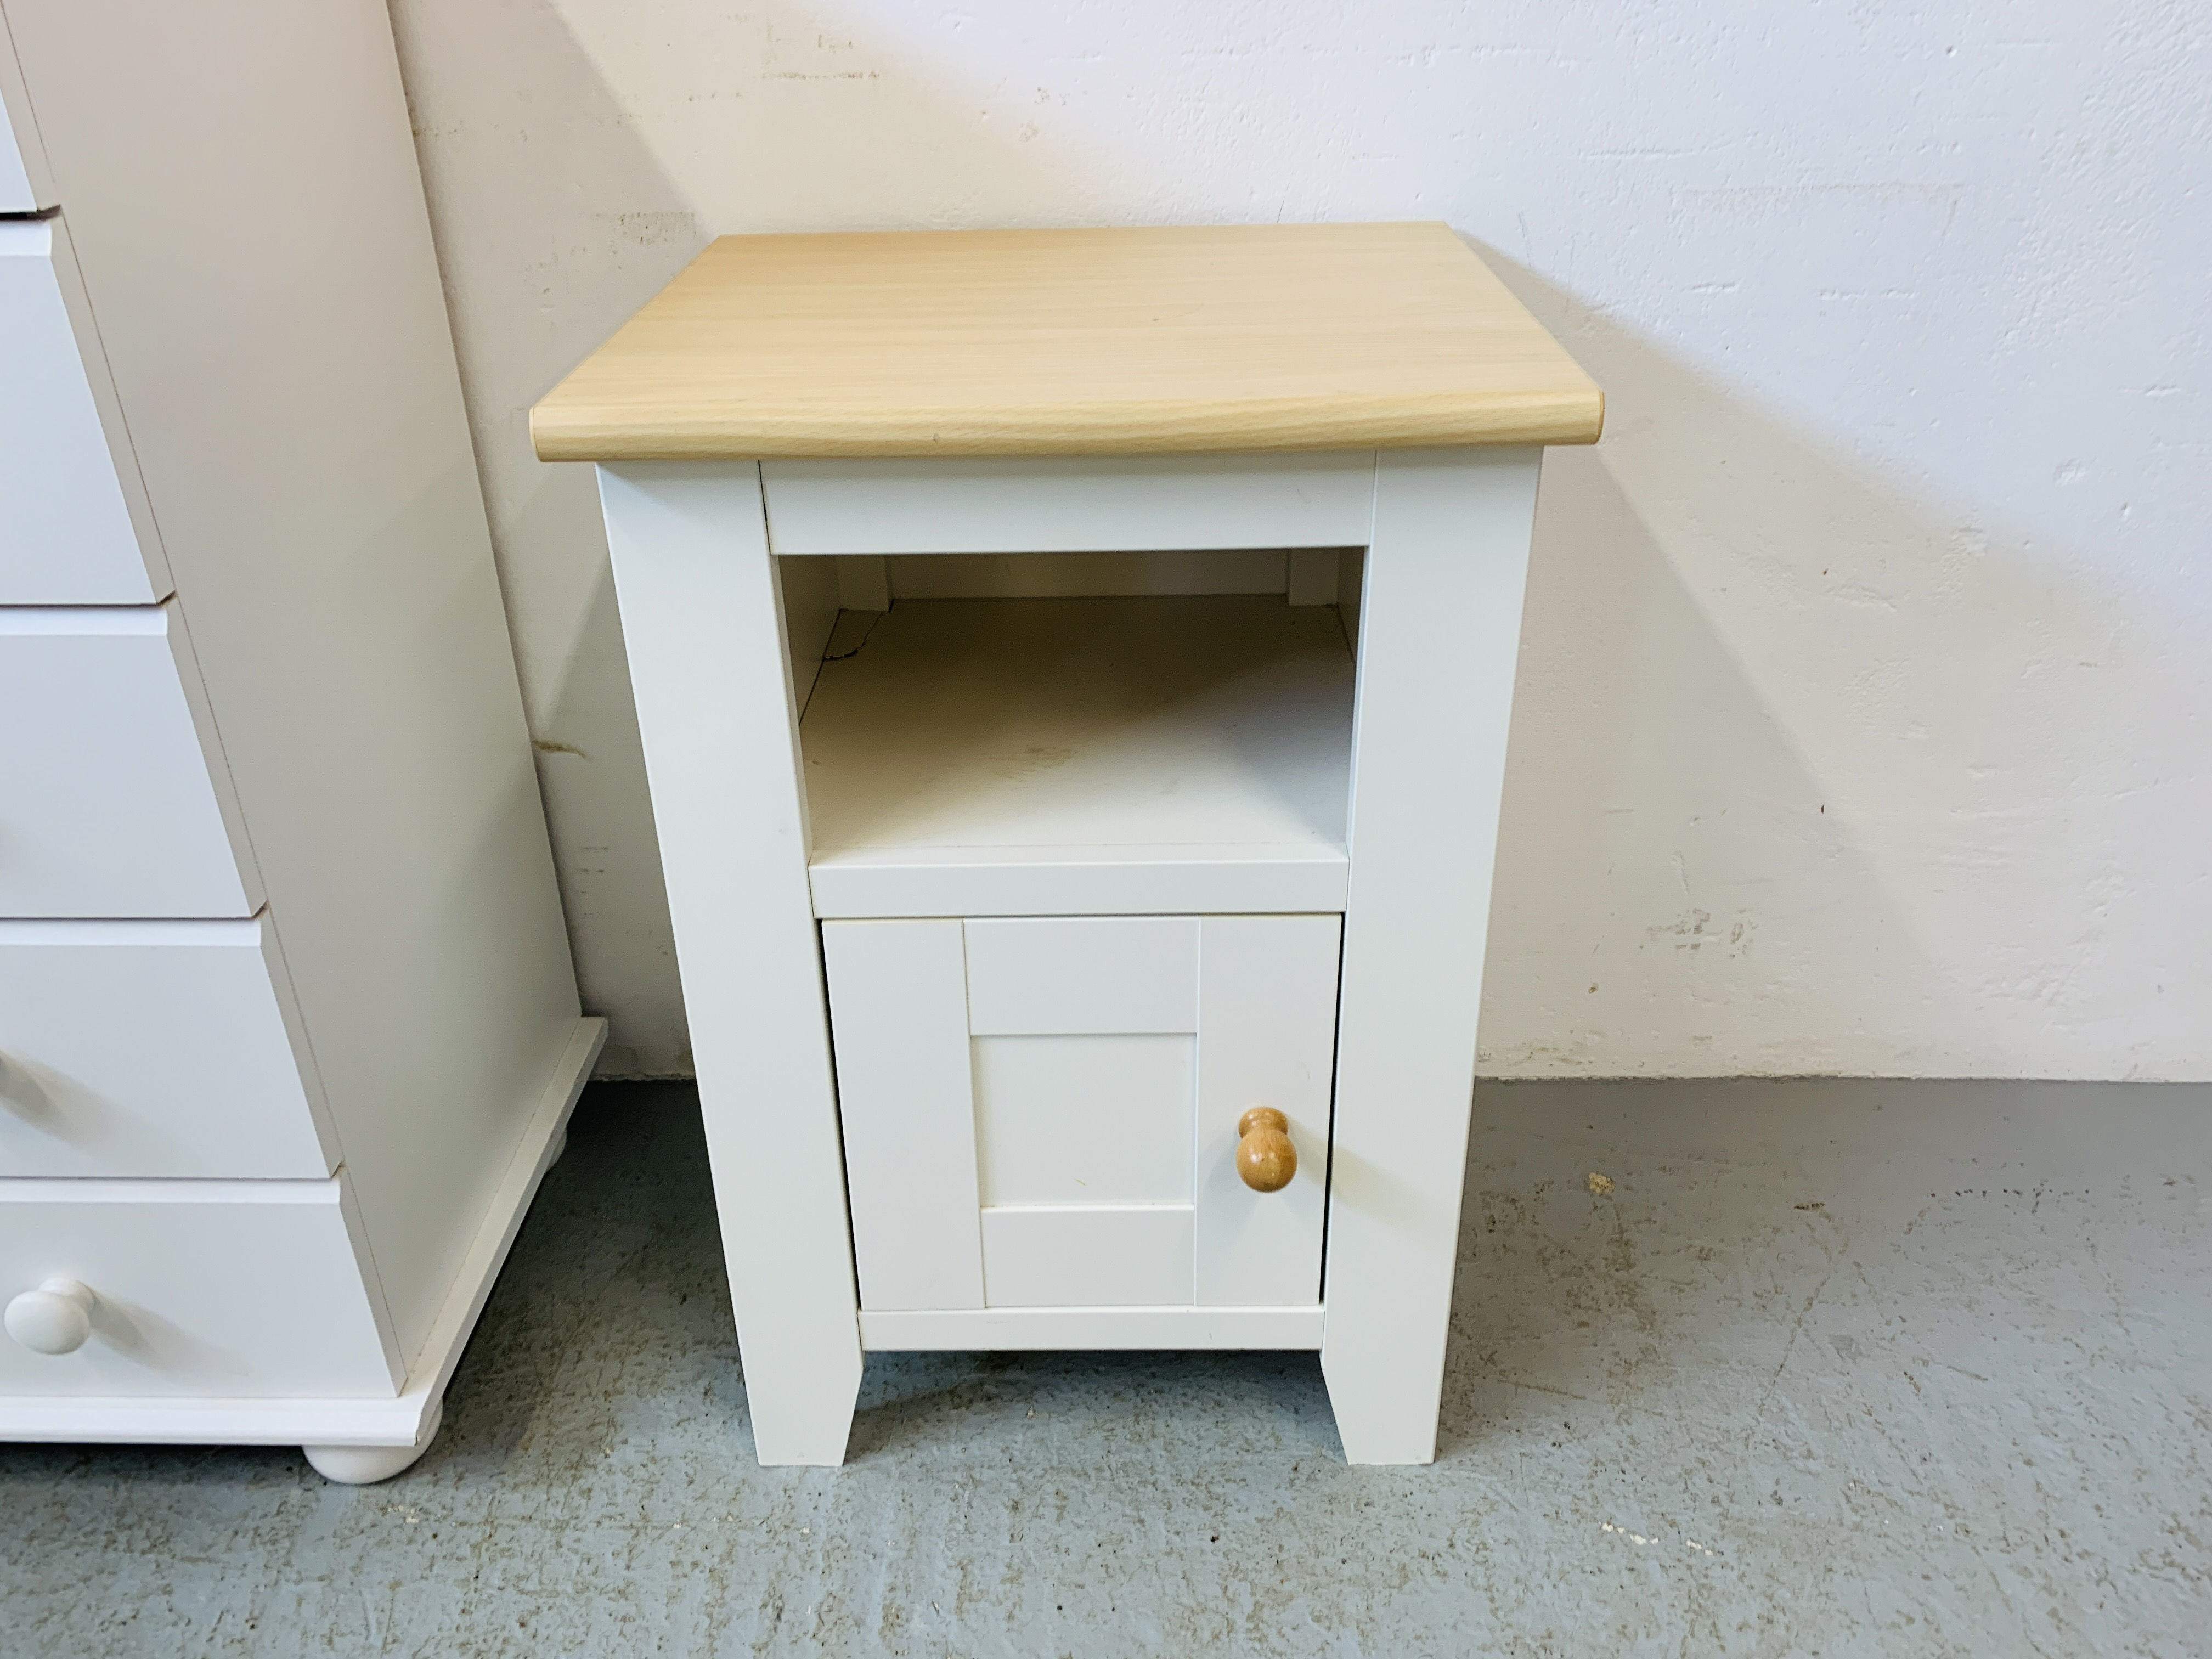 A MODERN WHITE FINISH TWO OVER FOUR CHEST OF DRAWERS - W 78CM. H 90CM. D 40CM. - Image 4 of 9